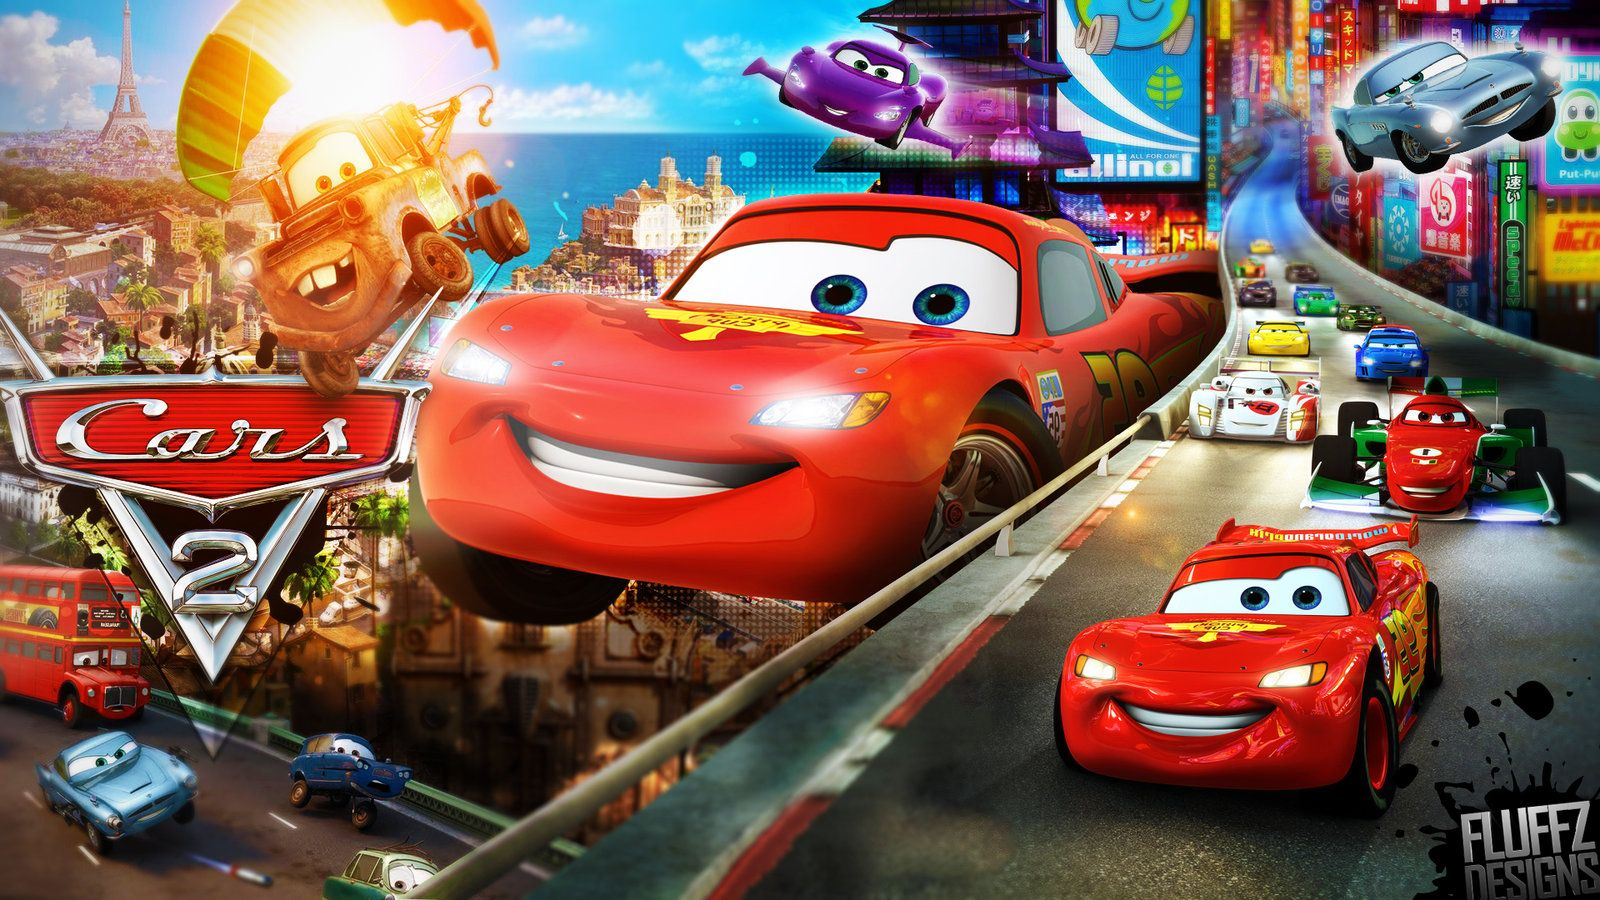 wallpapers ultrawide wallpapers phone wallpapers. Cars 2 Wallpapers Top Free Cars 2 Backgrounds Wallpaperaccess